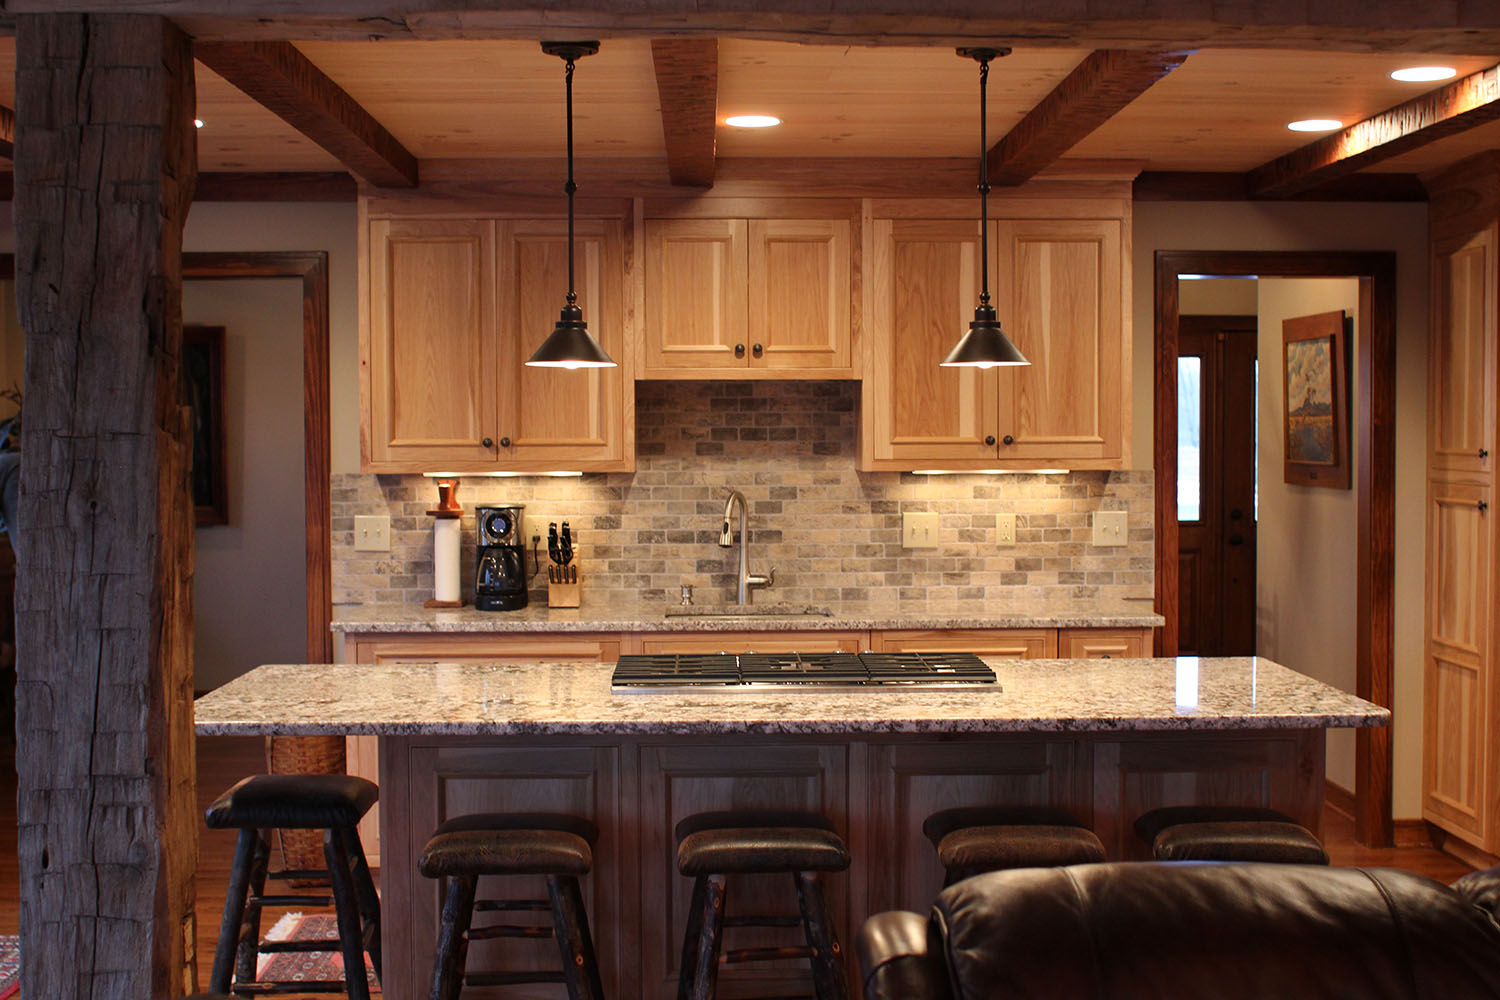 Best Kitchen Gallery: Custom Cabi Ry Mount Vernon Barn Pany of Kitchen Cabinets Amish on cal-ite.com